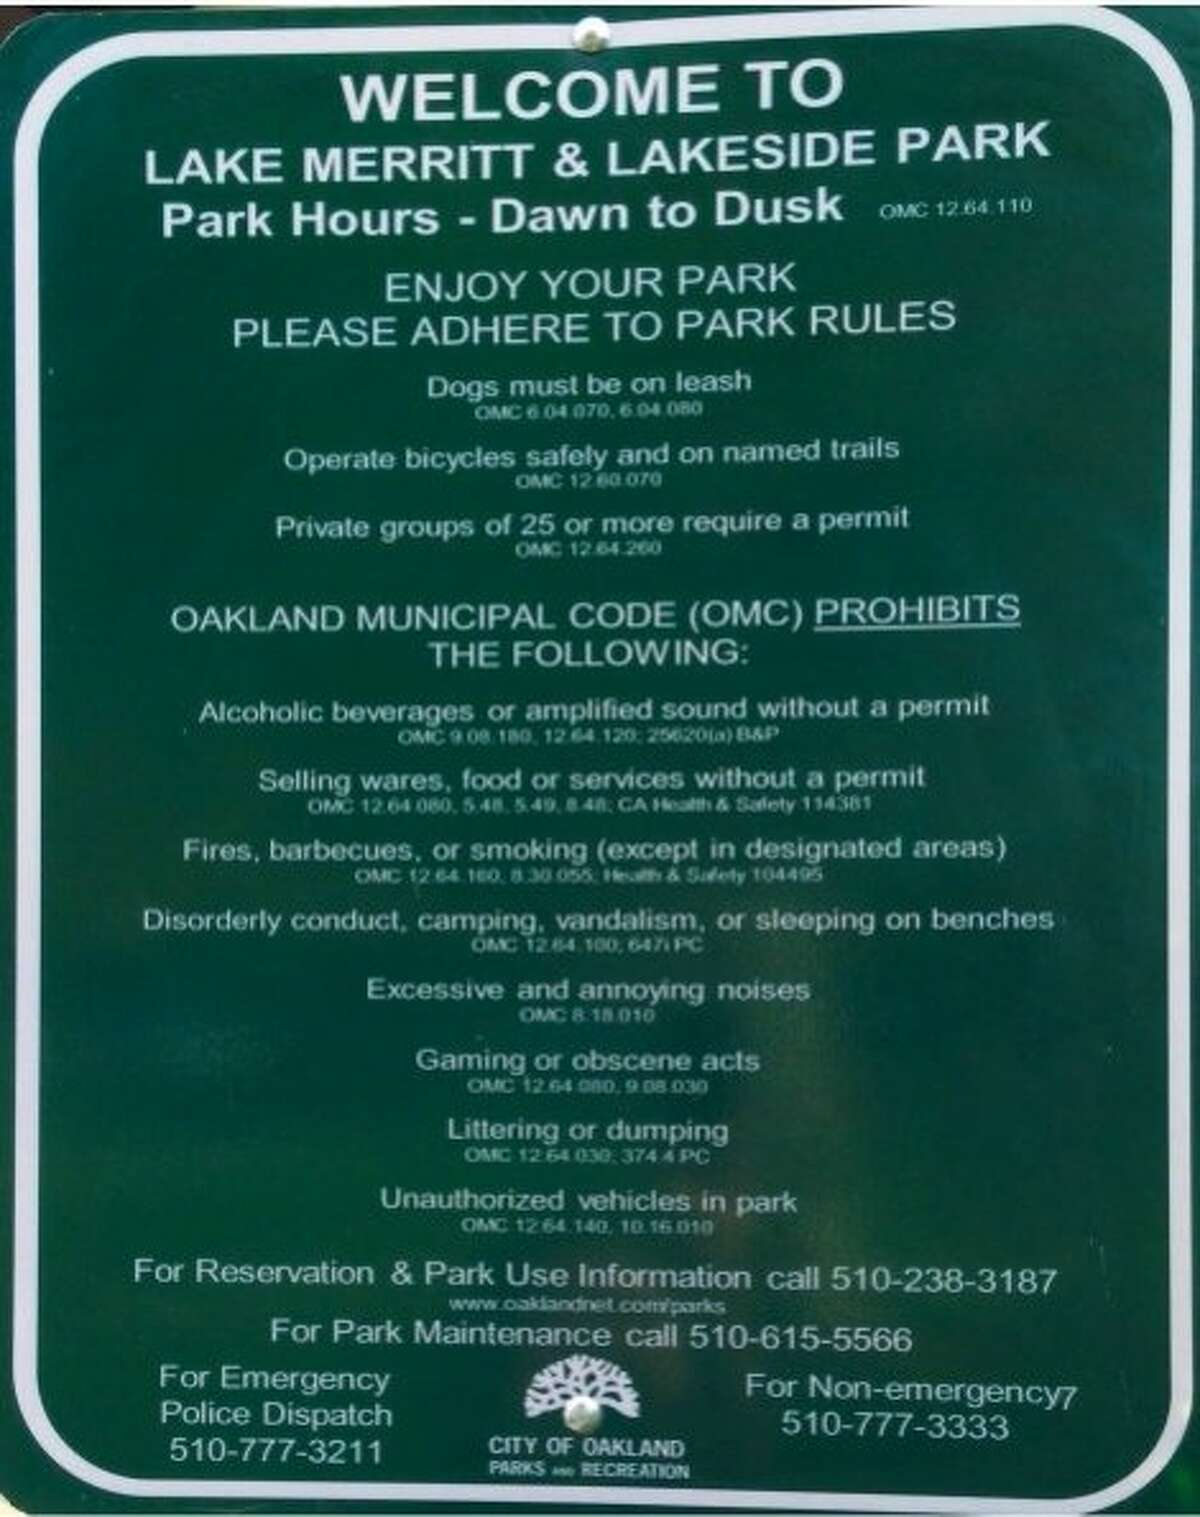 Sign at Lake Merritt and Lakeside Park says park hours are from dawn to dusk.